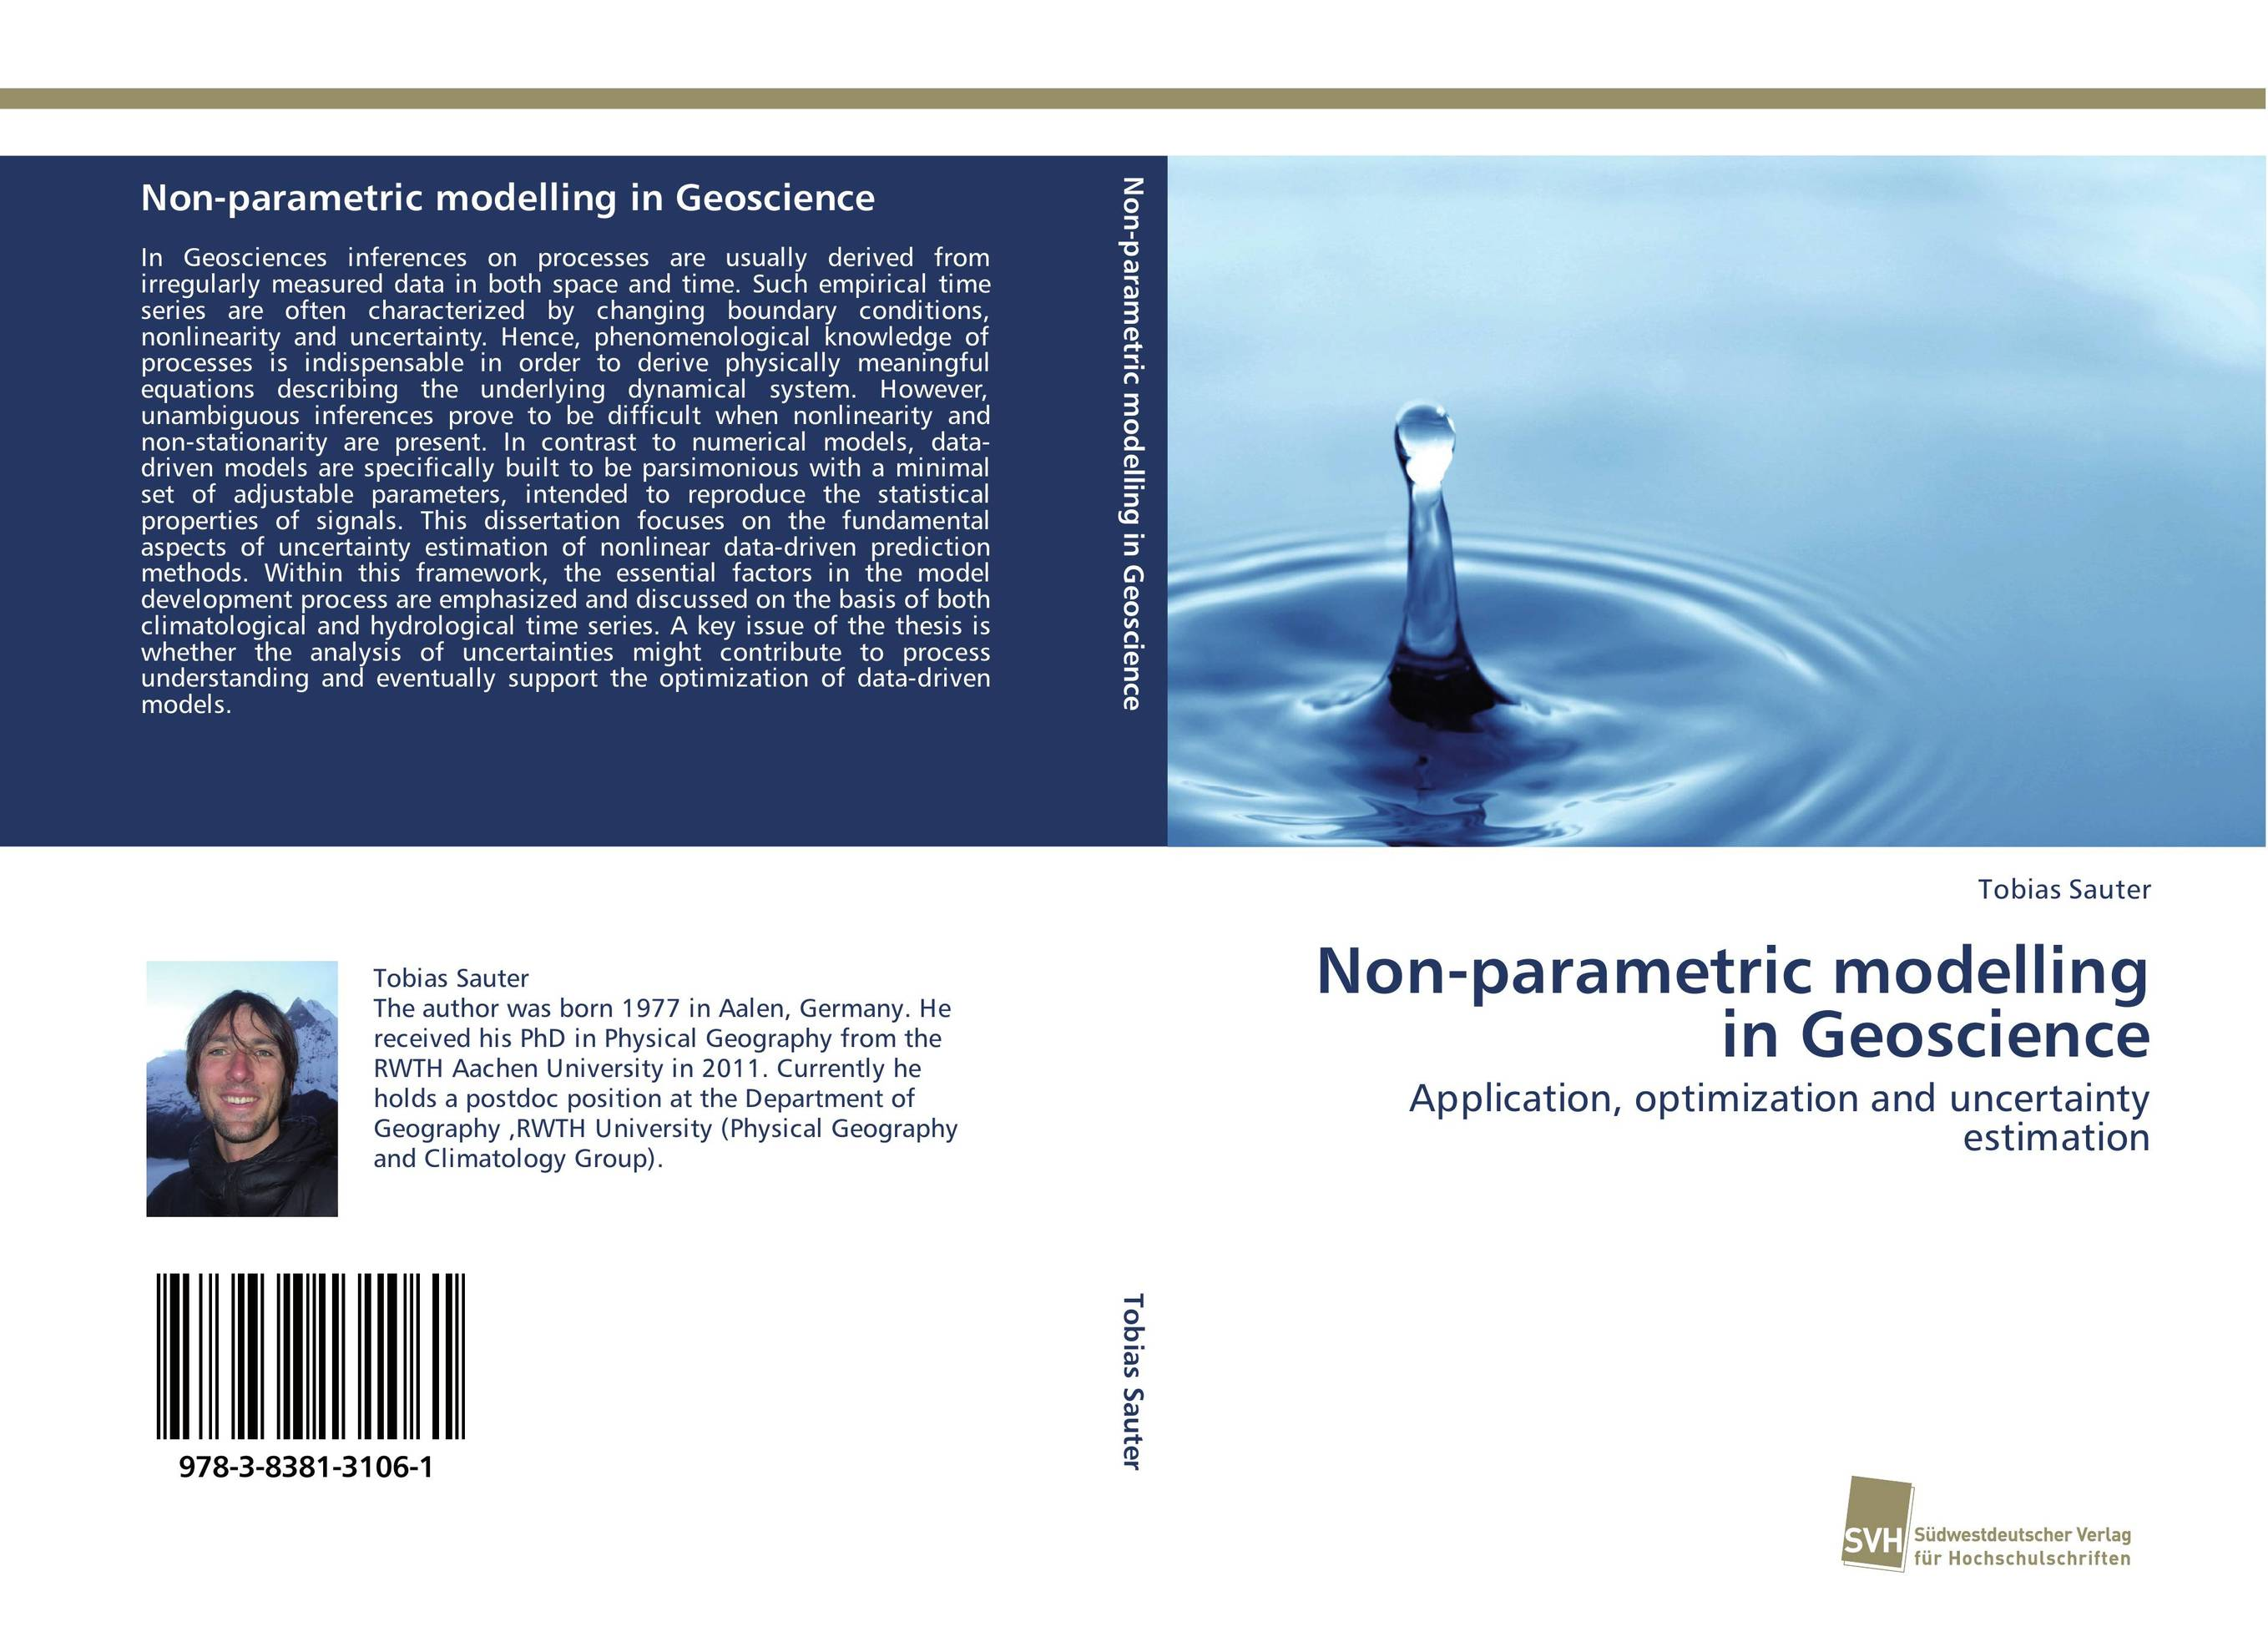 Non-parametric modelling in Geoscience driven to distraction